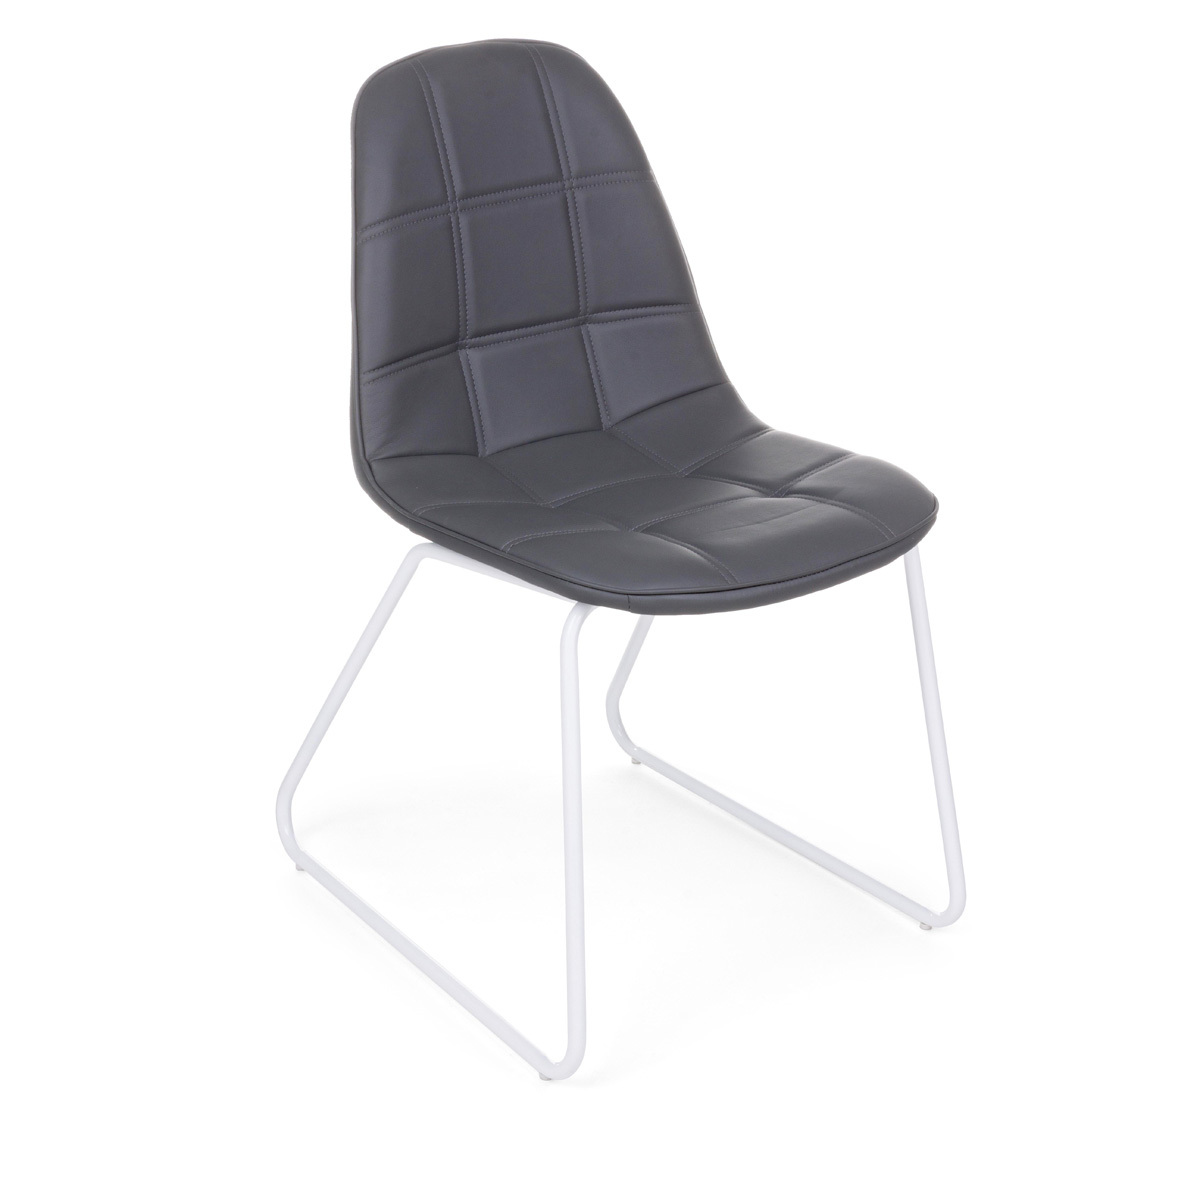 Photos 1: Bizzotto Chair in metal and eco-leather - anthracite 0731709